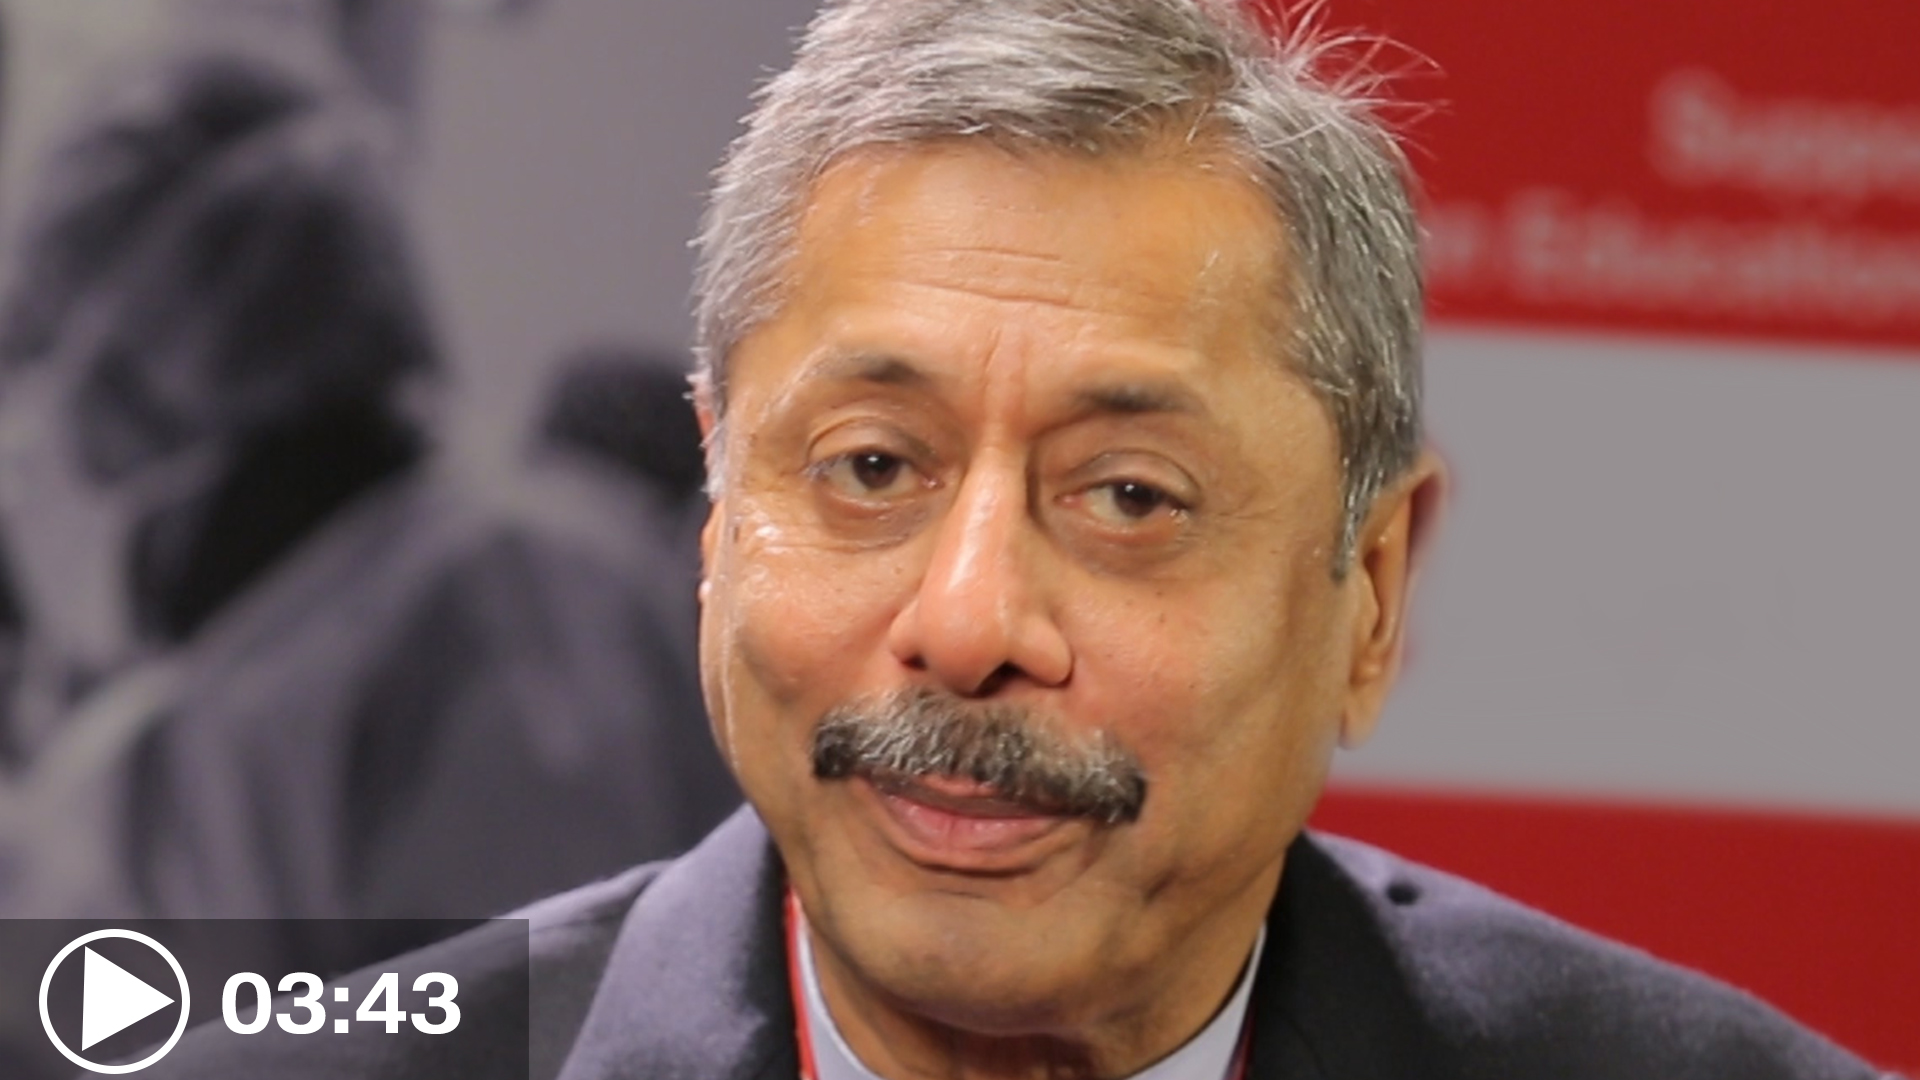 Dr Naresh Trehan, Chairman and Managing Director, Medanta-The Medicity, Therefore My Message on World Heart Day